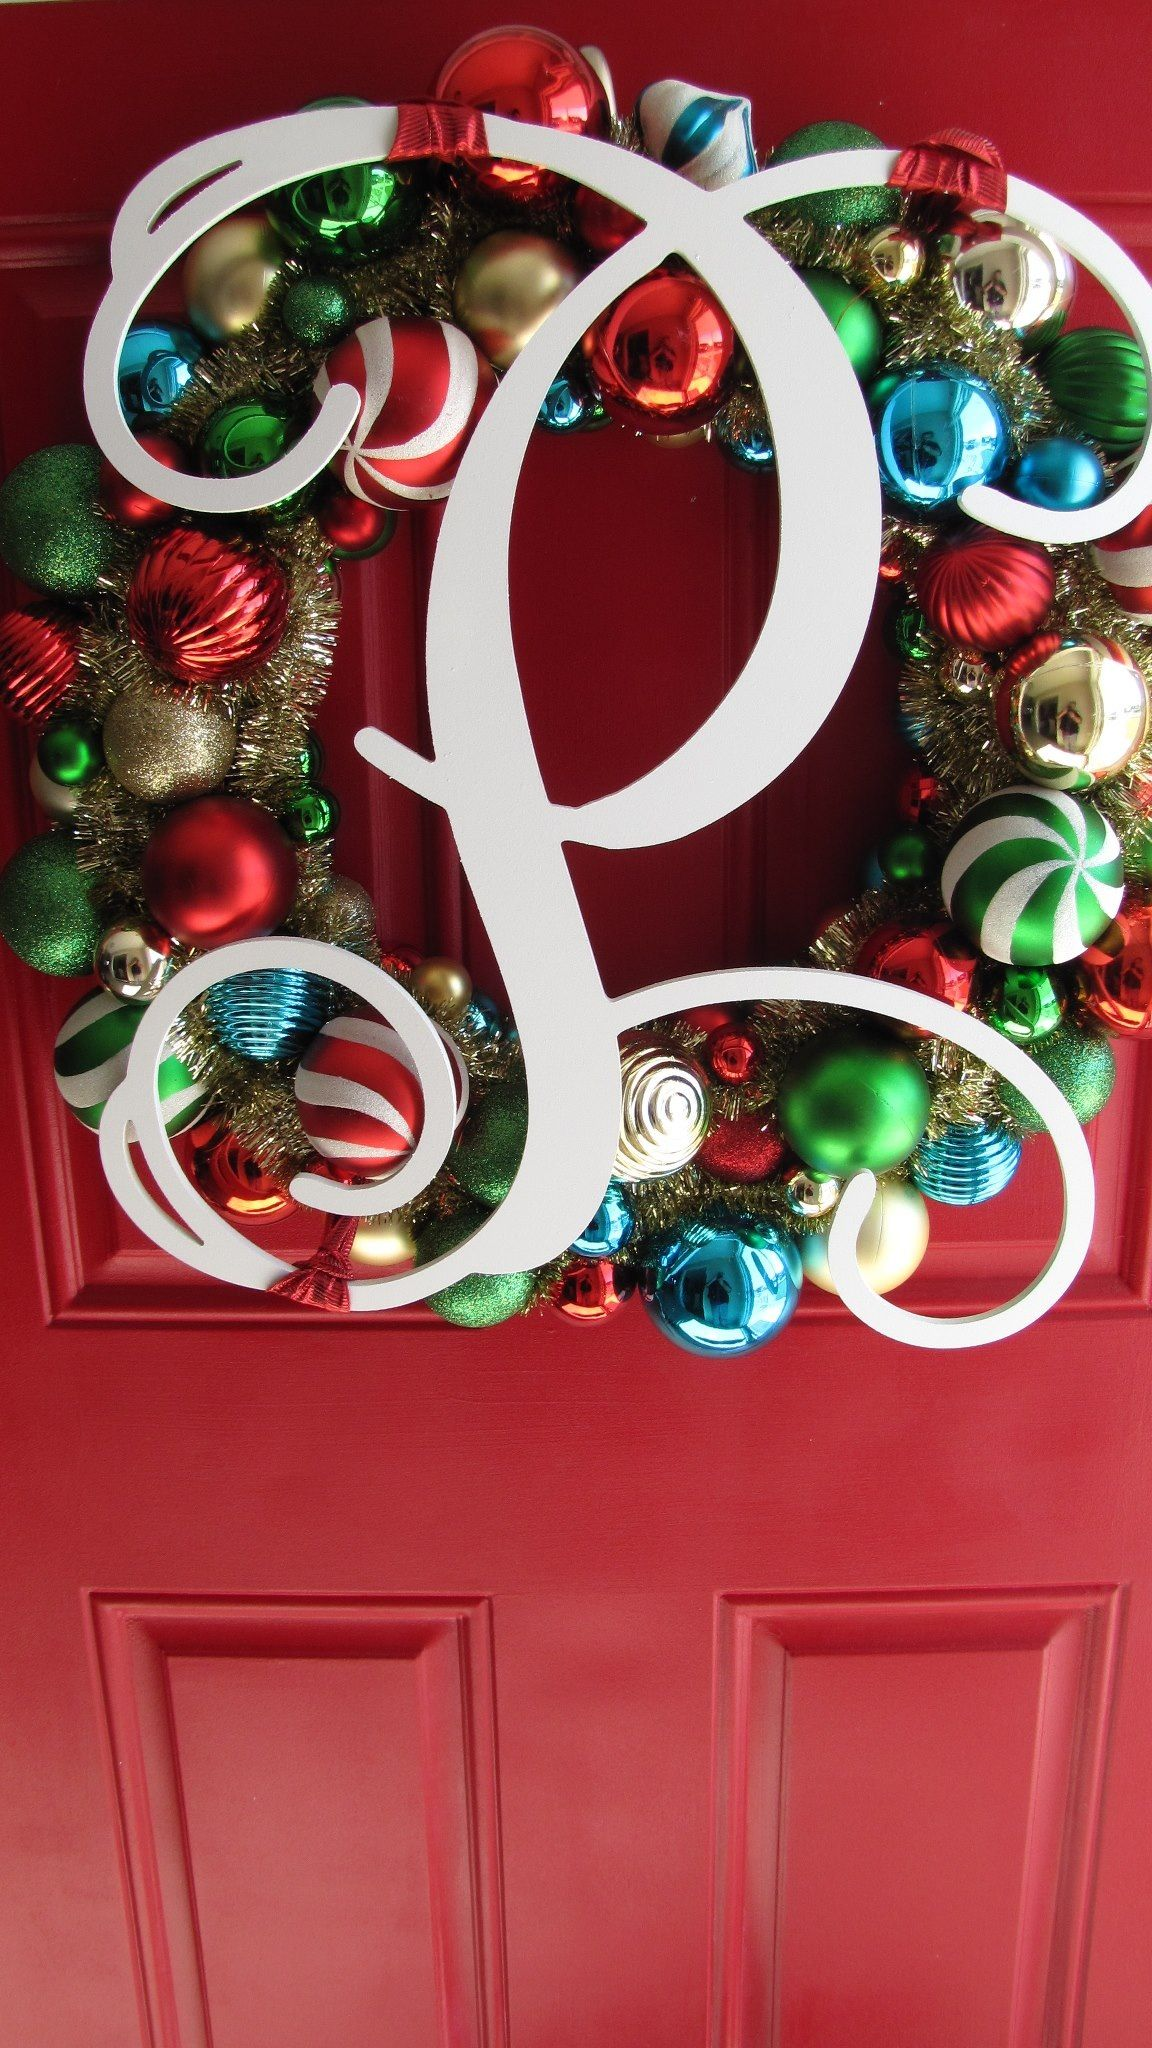 Martha Stewart Wreath From Home Depot And The Monogrammed Letter